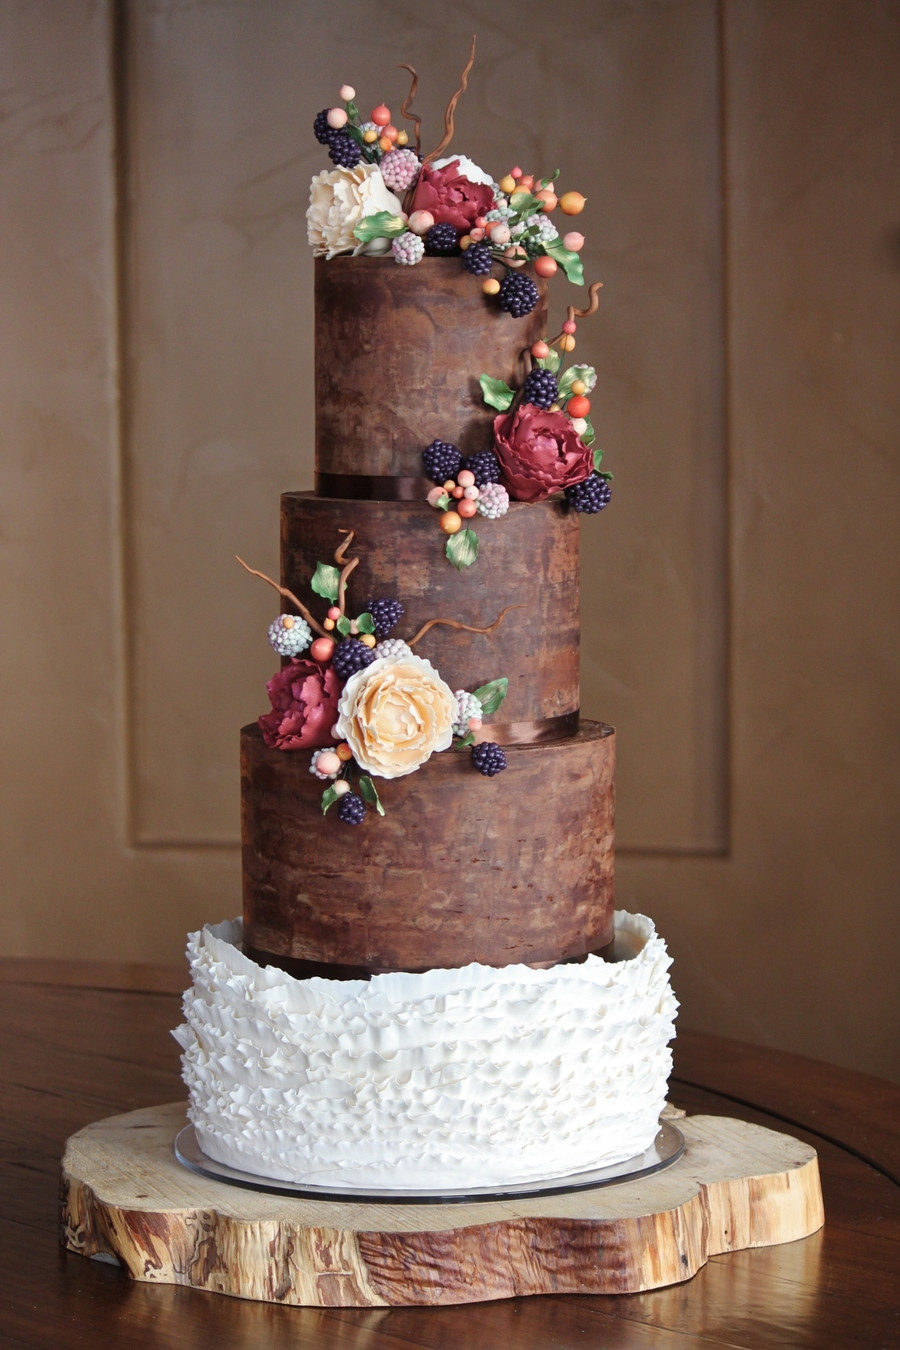 Chocolate Wedding Cakes Pictures  Rustic And Organic Wedding Cake With Chocolate Ganache